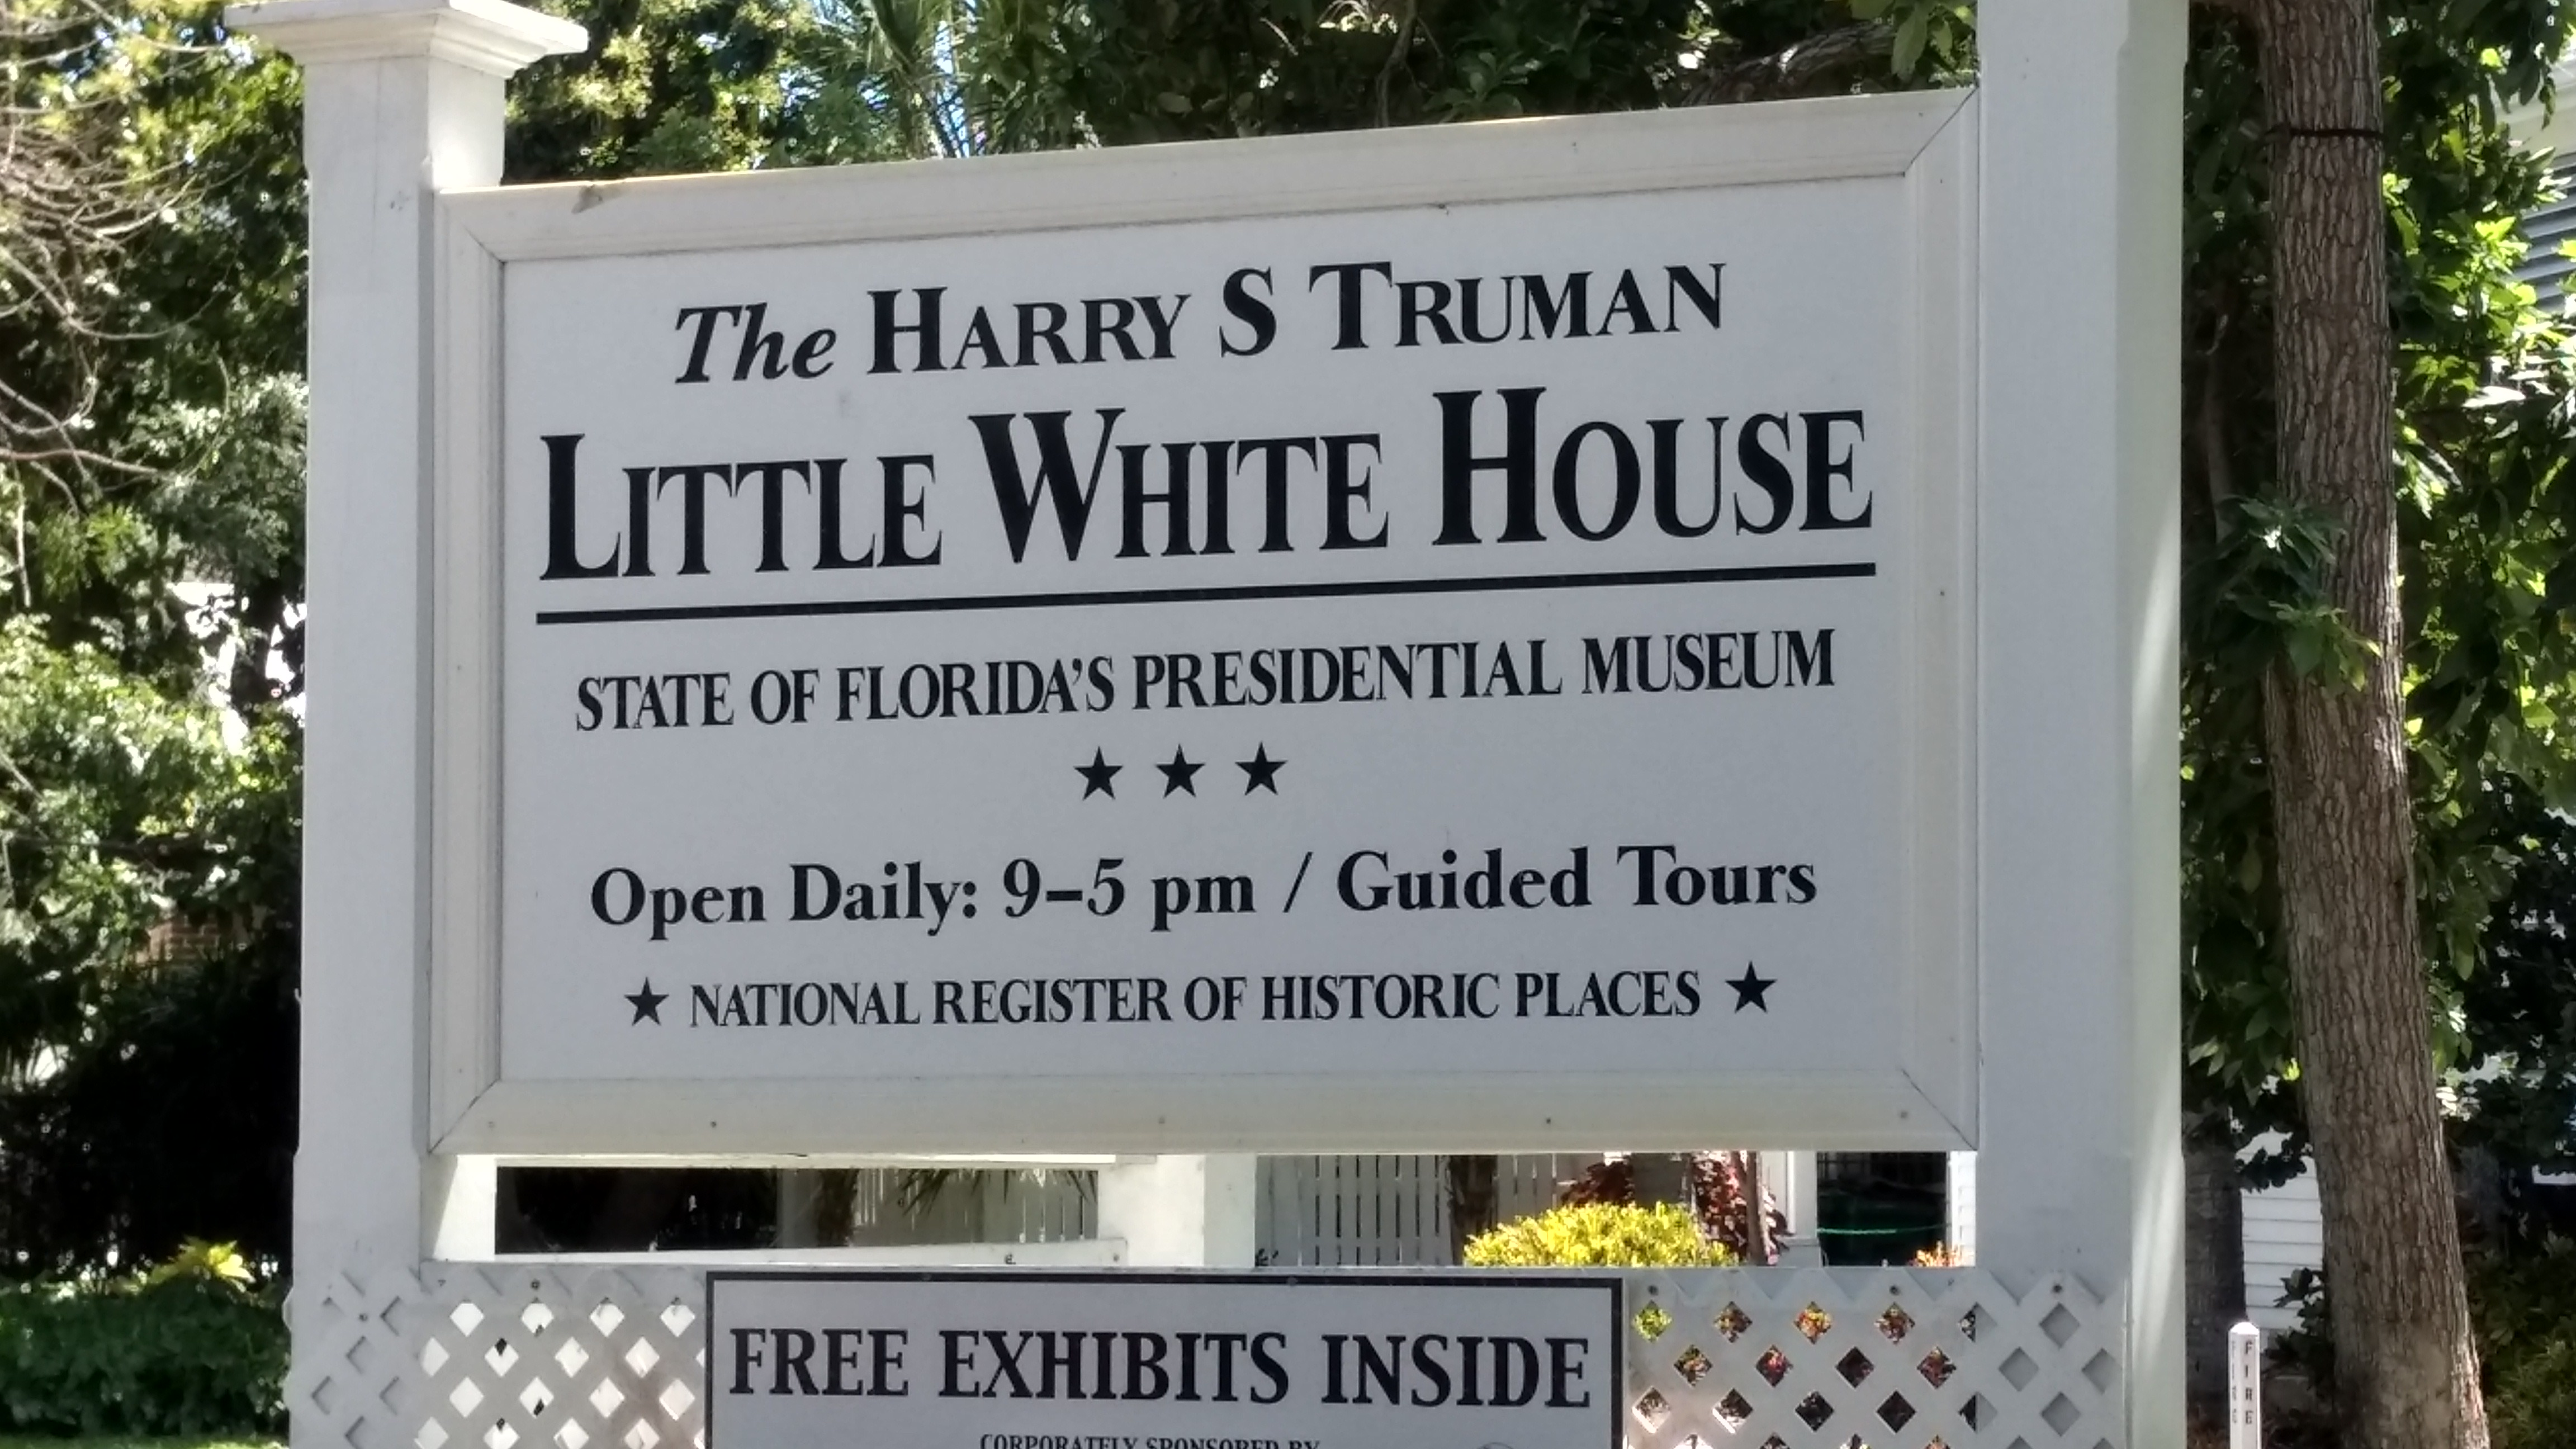 Harry S. Truman's Little White House (located on Front Street)